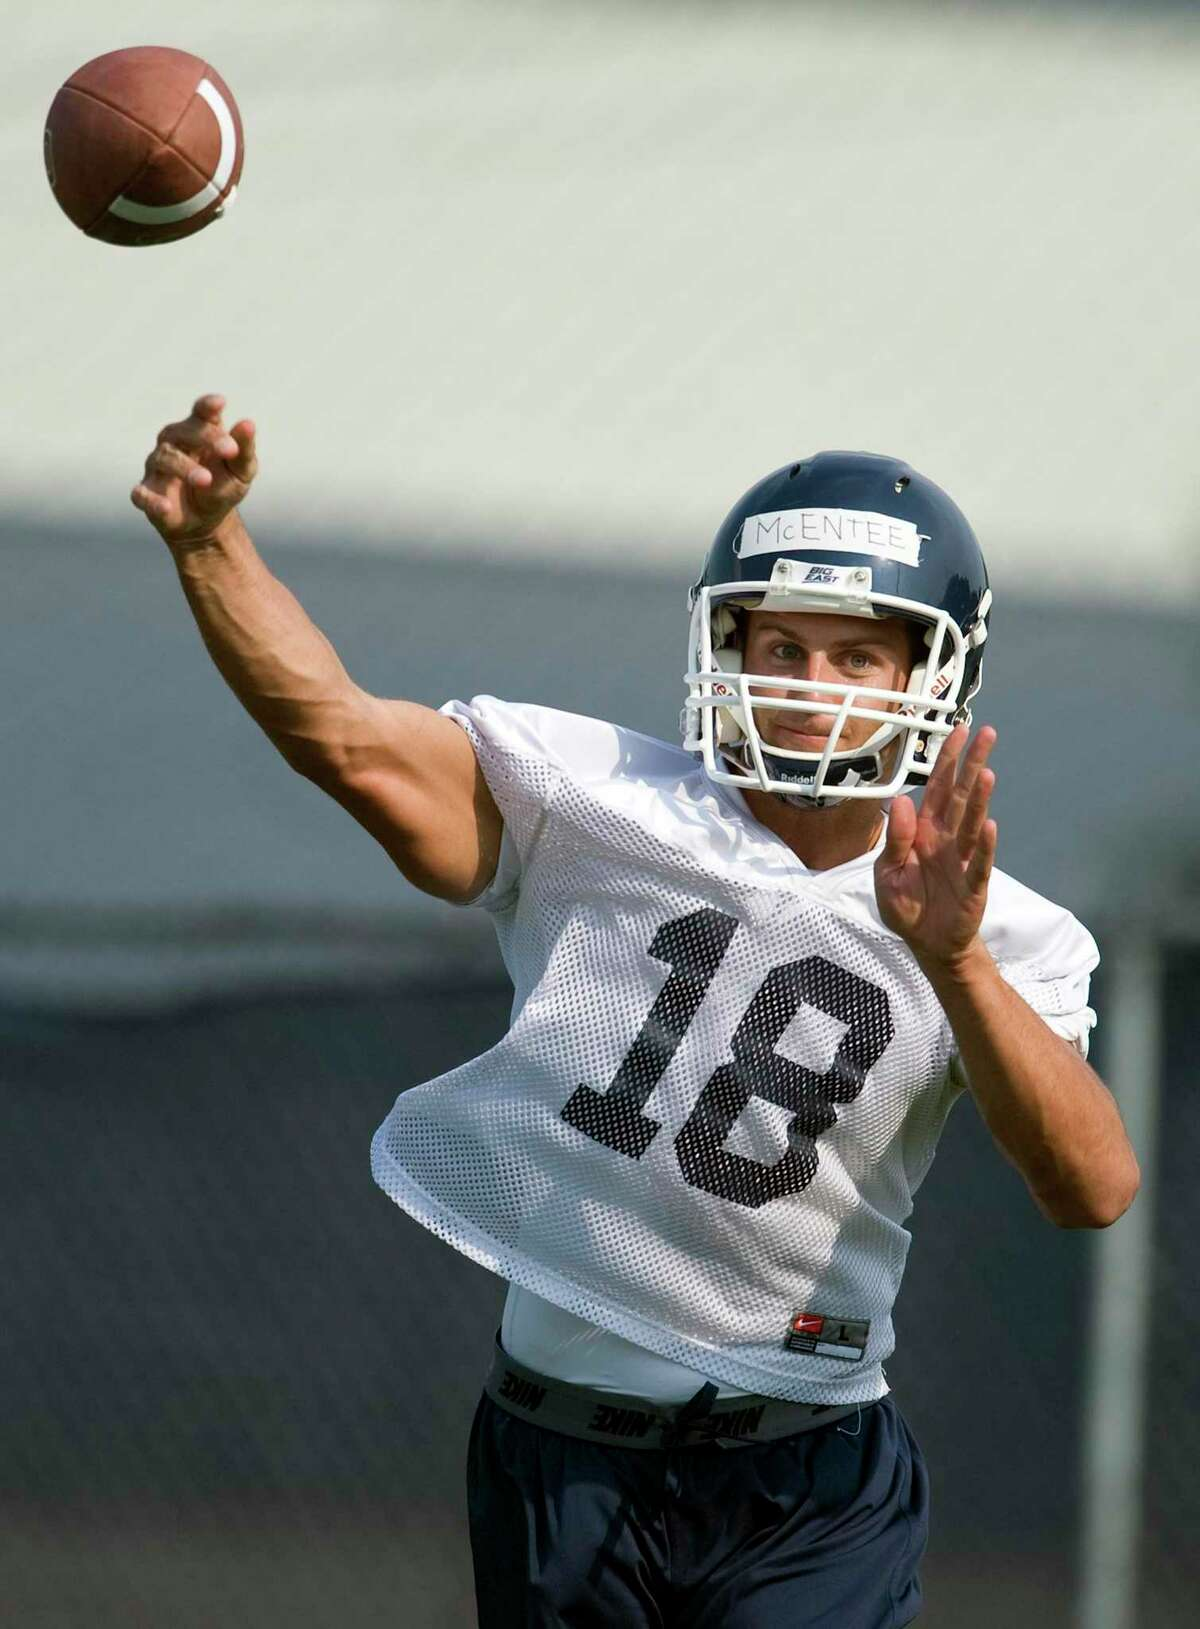 UConn quarterback Johnny McEntee throws during NCAA college football practice in Storrs on Aug. 3, 2012.